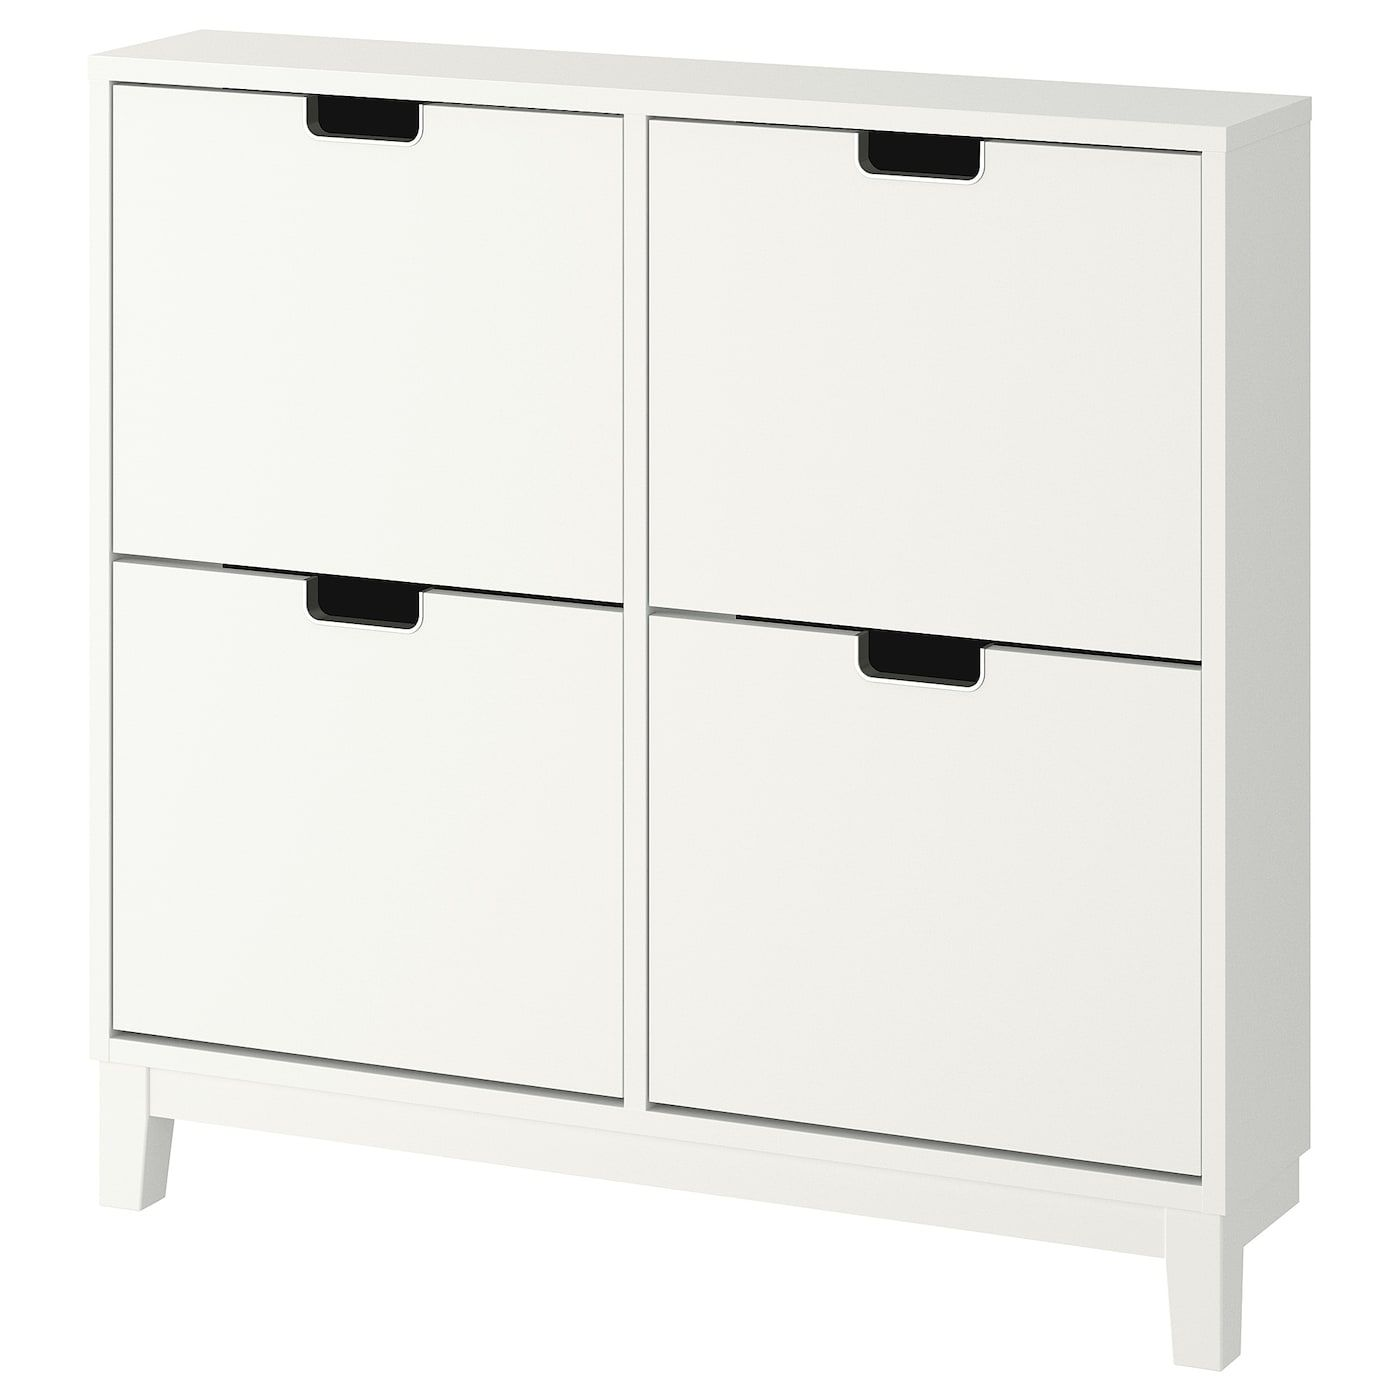 Ikea Stall White Shoe Cabinet With 4 Compartments Schuhschrank